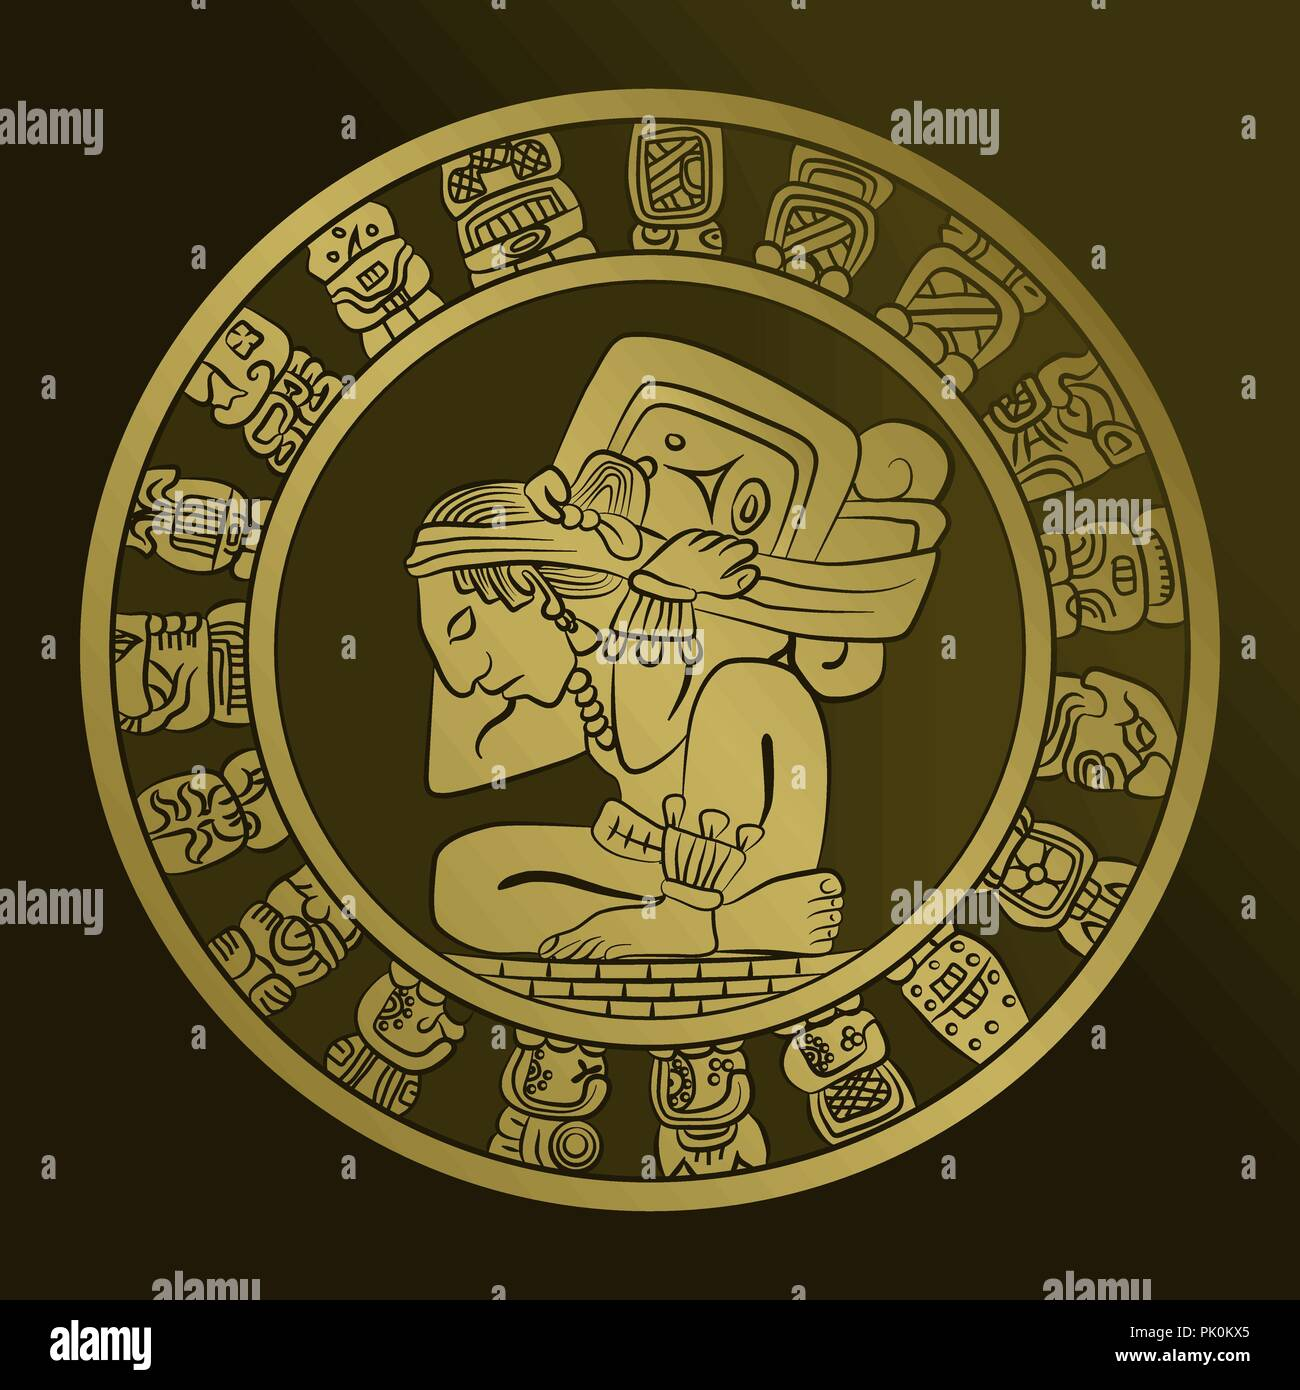 Calendario Maya Vector.Vector Mayan Calendar Image On The Coin Mexican Culture